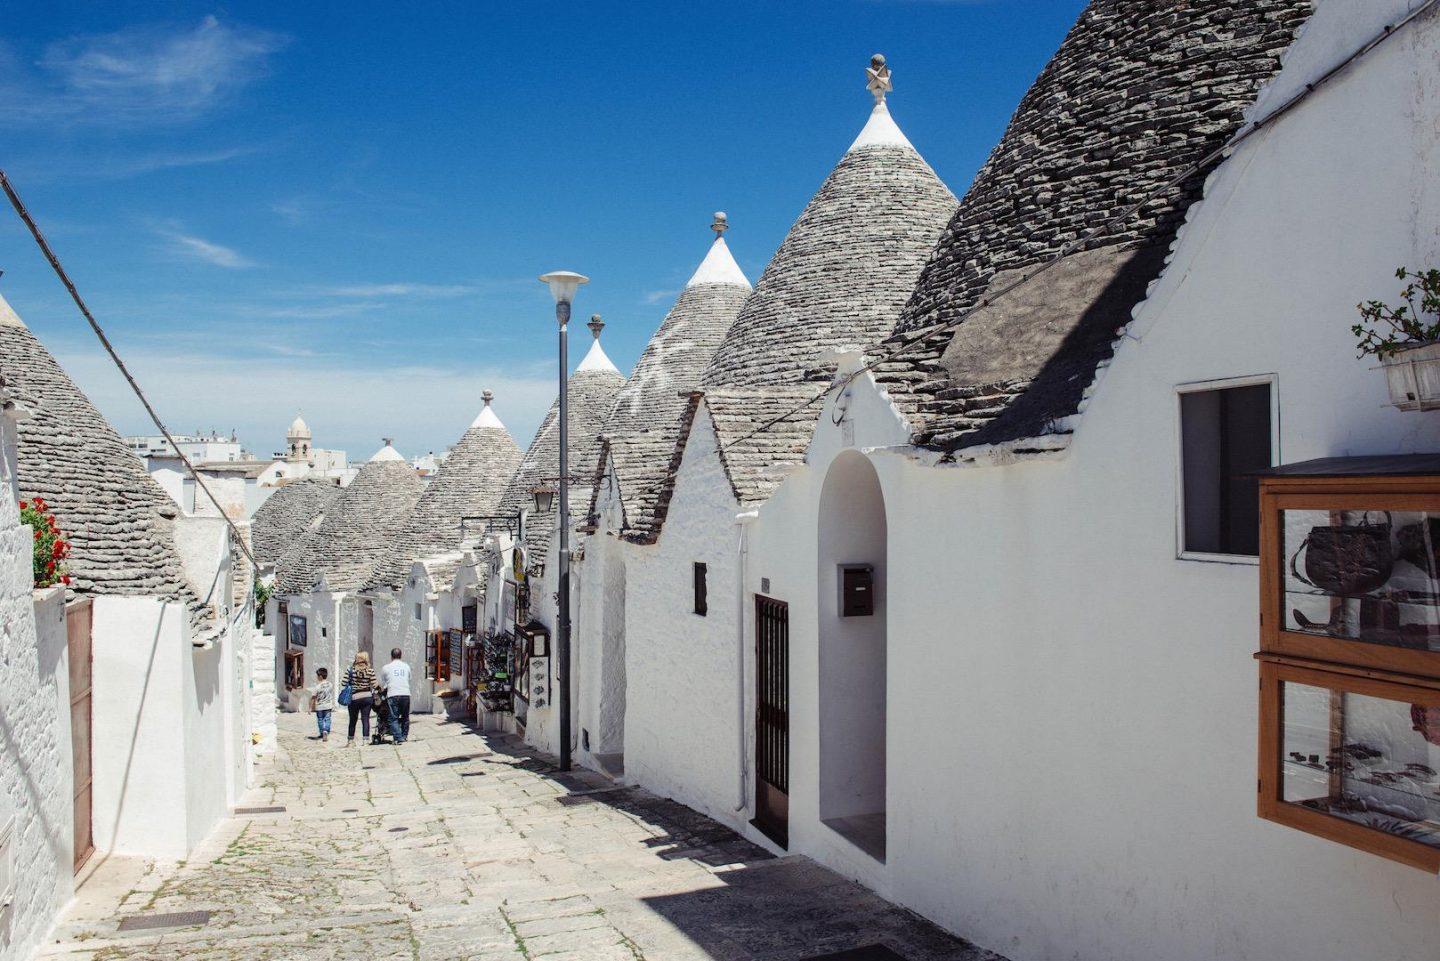 Trulli houses of Alberobello | Italy